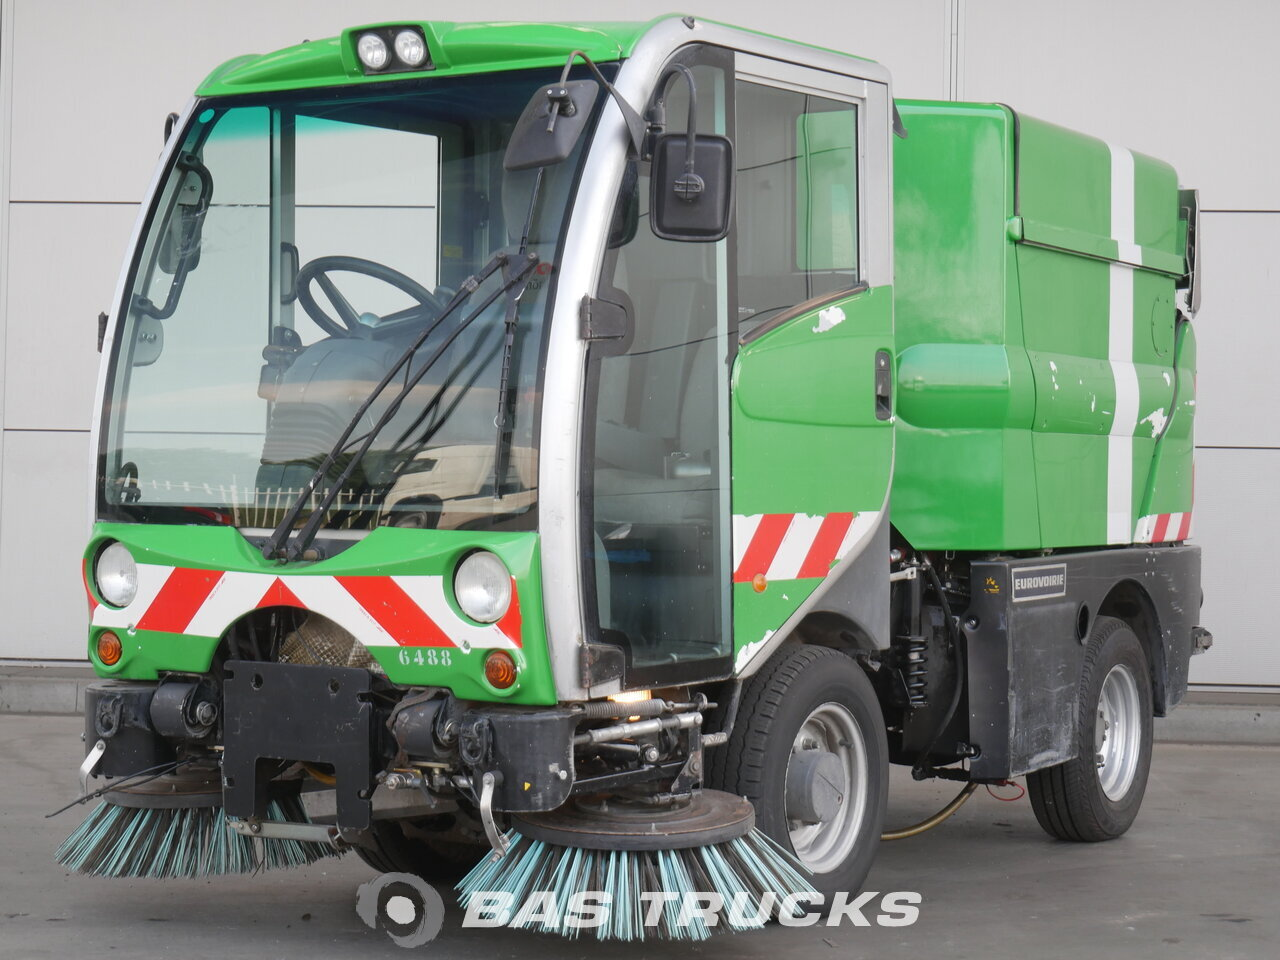 For sale at BAS Trucks: EUROVOIRIE CITYCAT 2020 4X4 01/2011